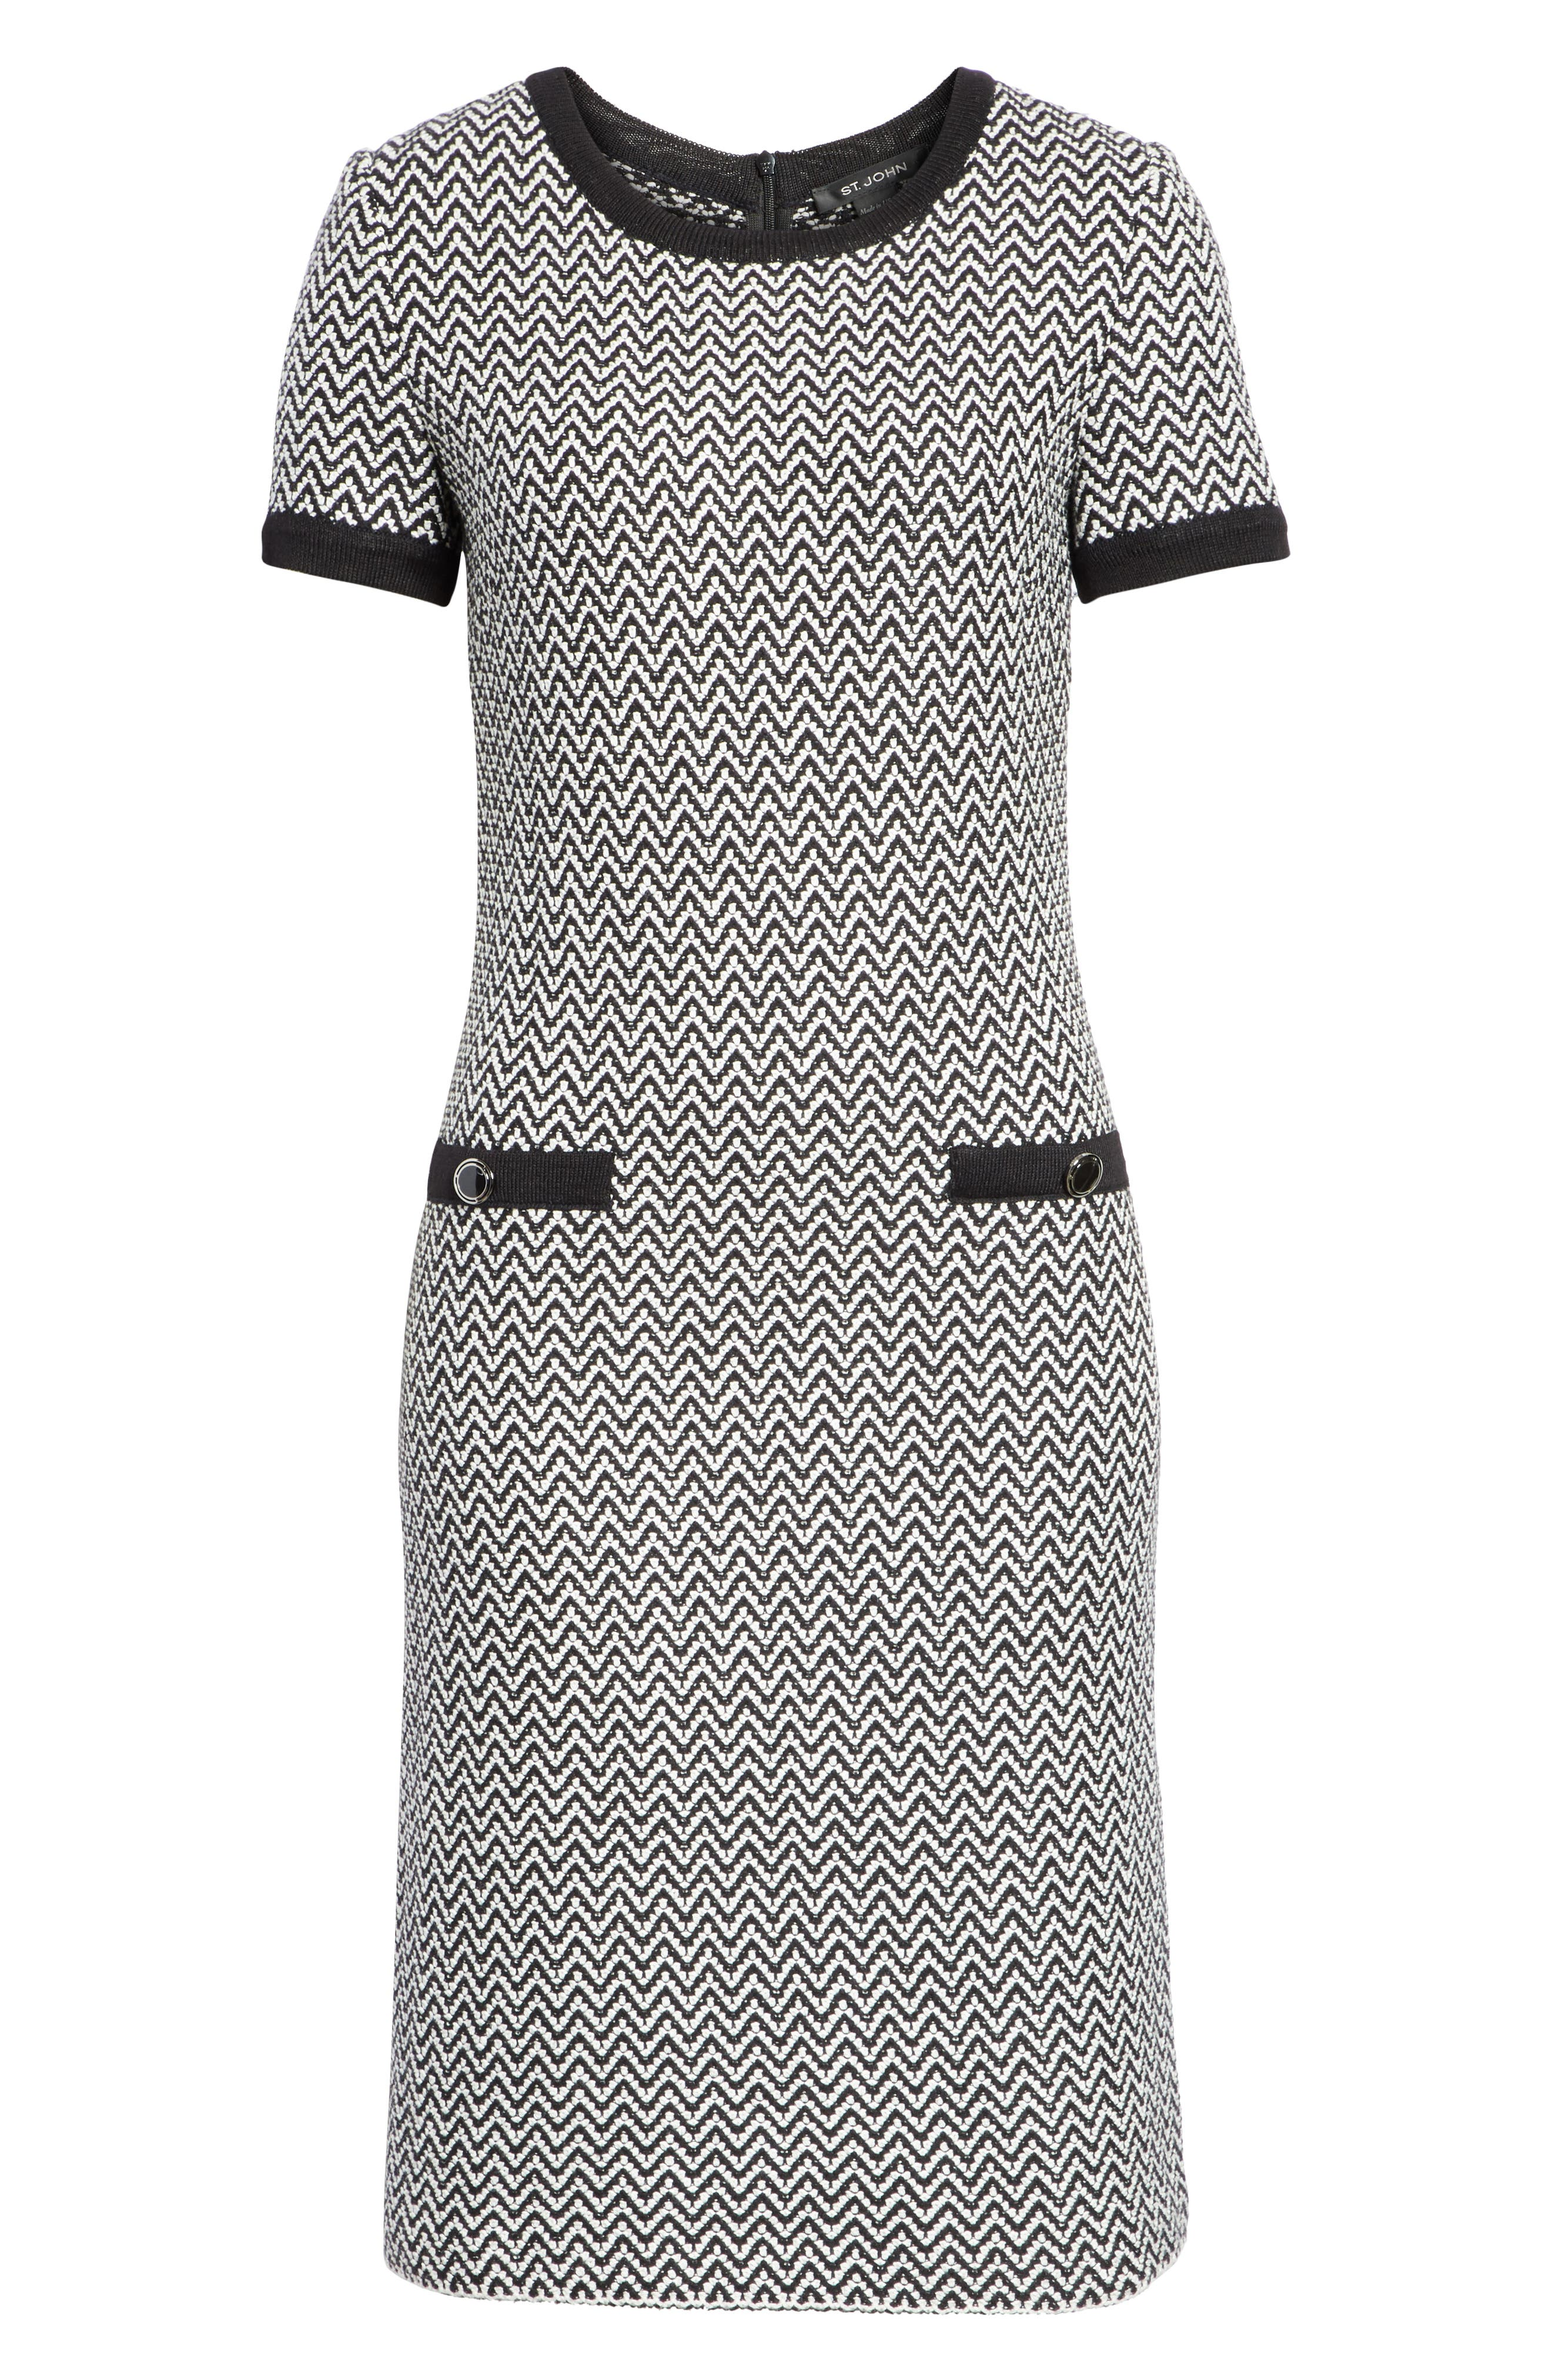 ST. JOHN COLLECTION, Mod Herringbone Knit Dress, Alternate thumbnail 6, color, CAVIAR/ CREAM